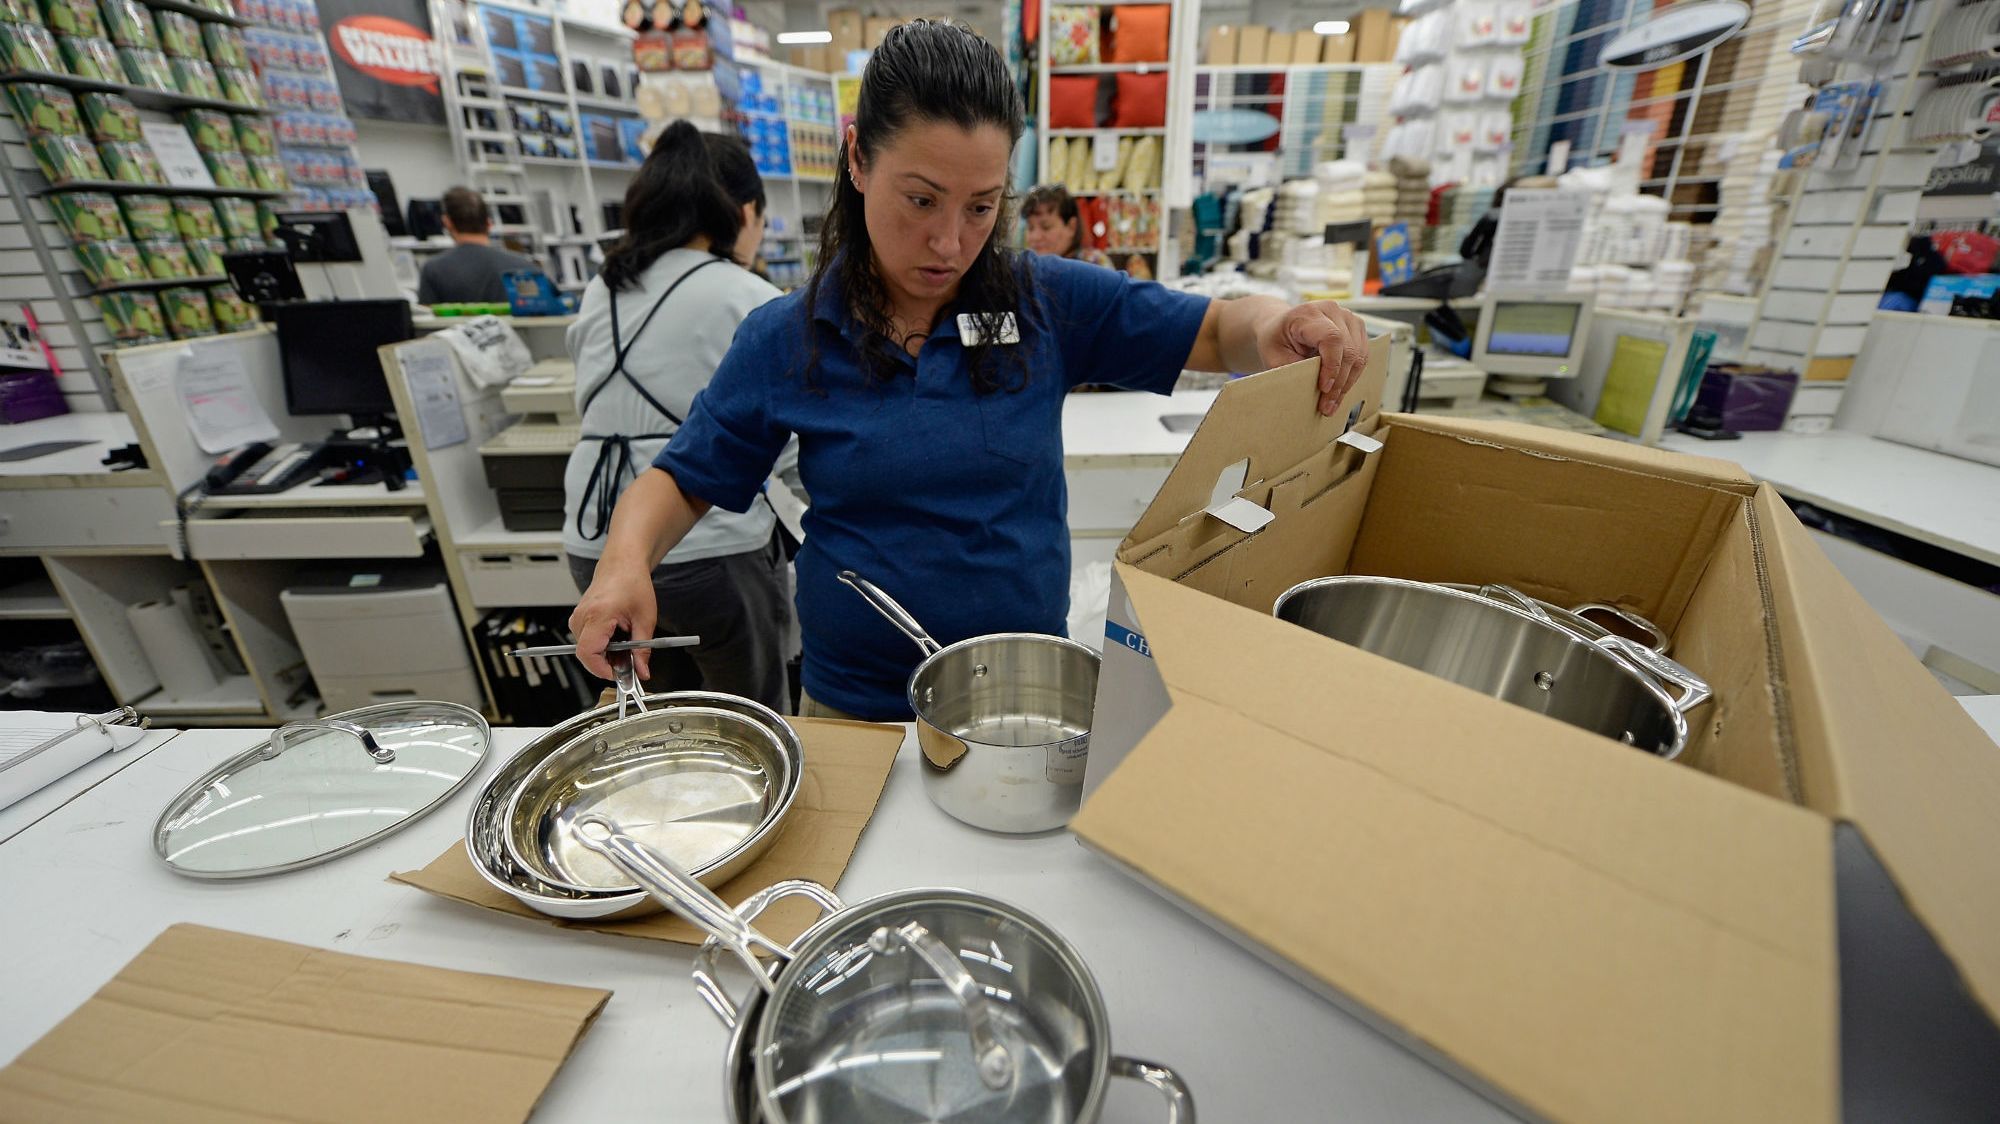 12 Secrets Of Bed Bath Beyond Employees Mental Floss